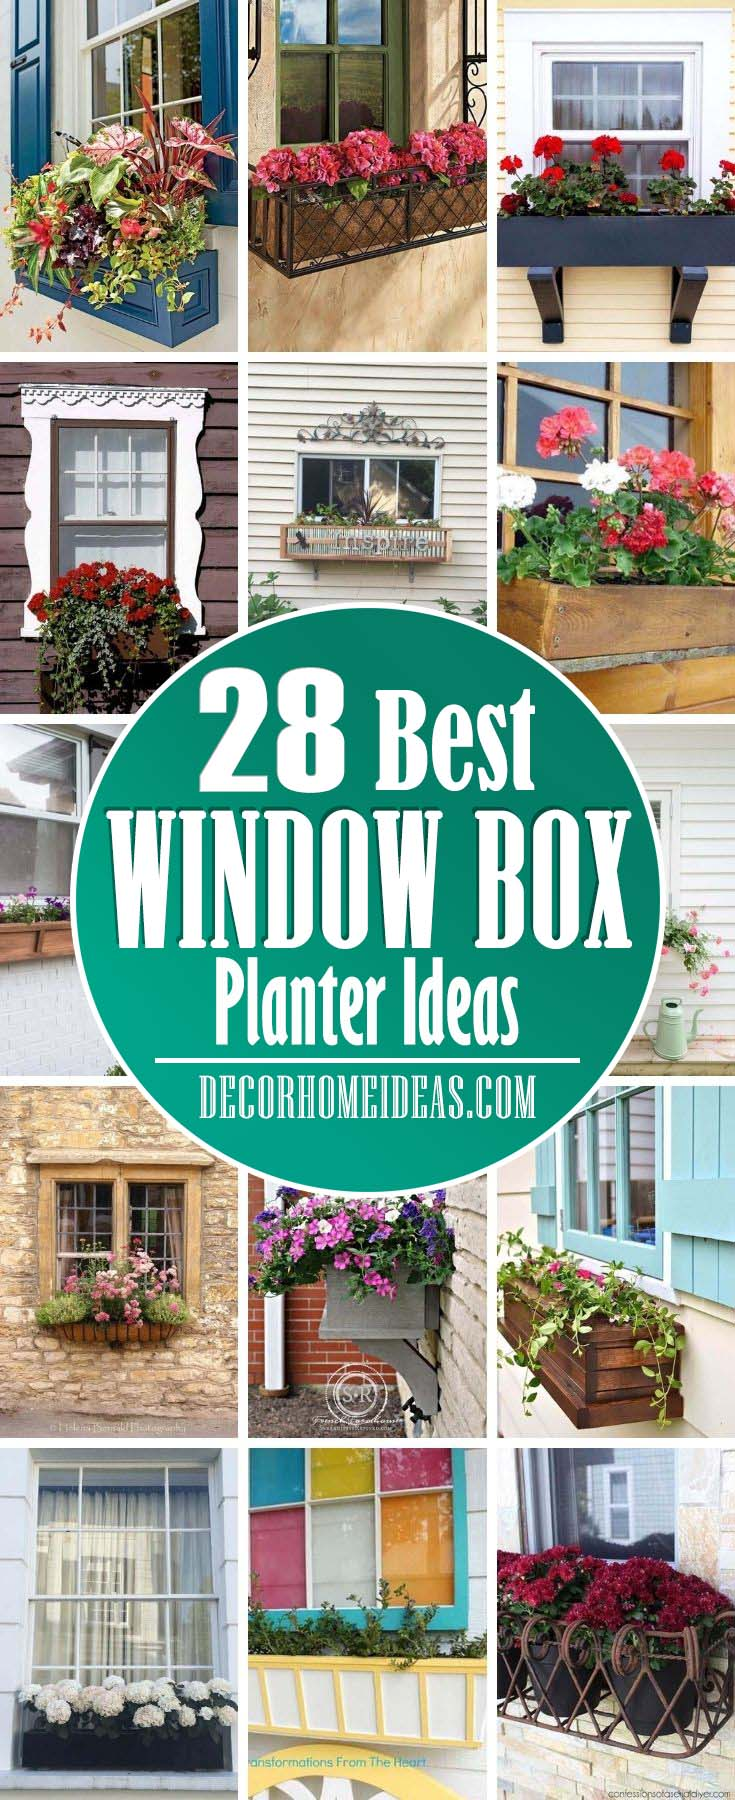 Best Window Box Planter Ideas. These window box planter ideas will make an adorable addition to any home. They are really beautiful and inspiring for your next home project. #decorhomeideas